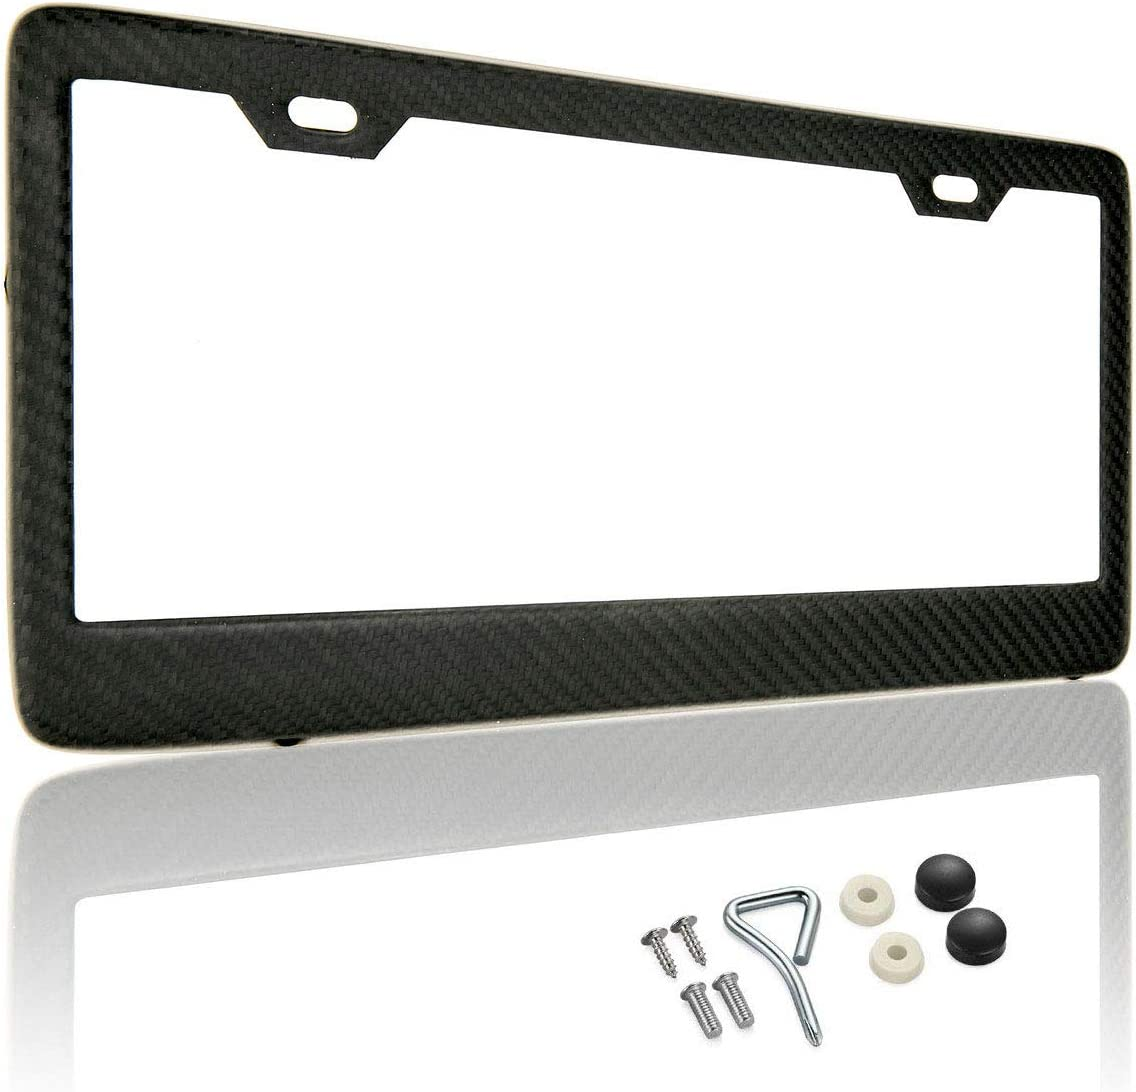 100% Matte Black Real Carbon Fiber License Plate Frame 2 Holes Black Licenses Plates Frames,Car Licence Plate Covers Holders Slim Design with Chrome Screw Caps Tool Kit for US, Canda and Mexico (1PCS)